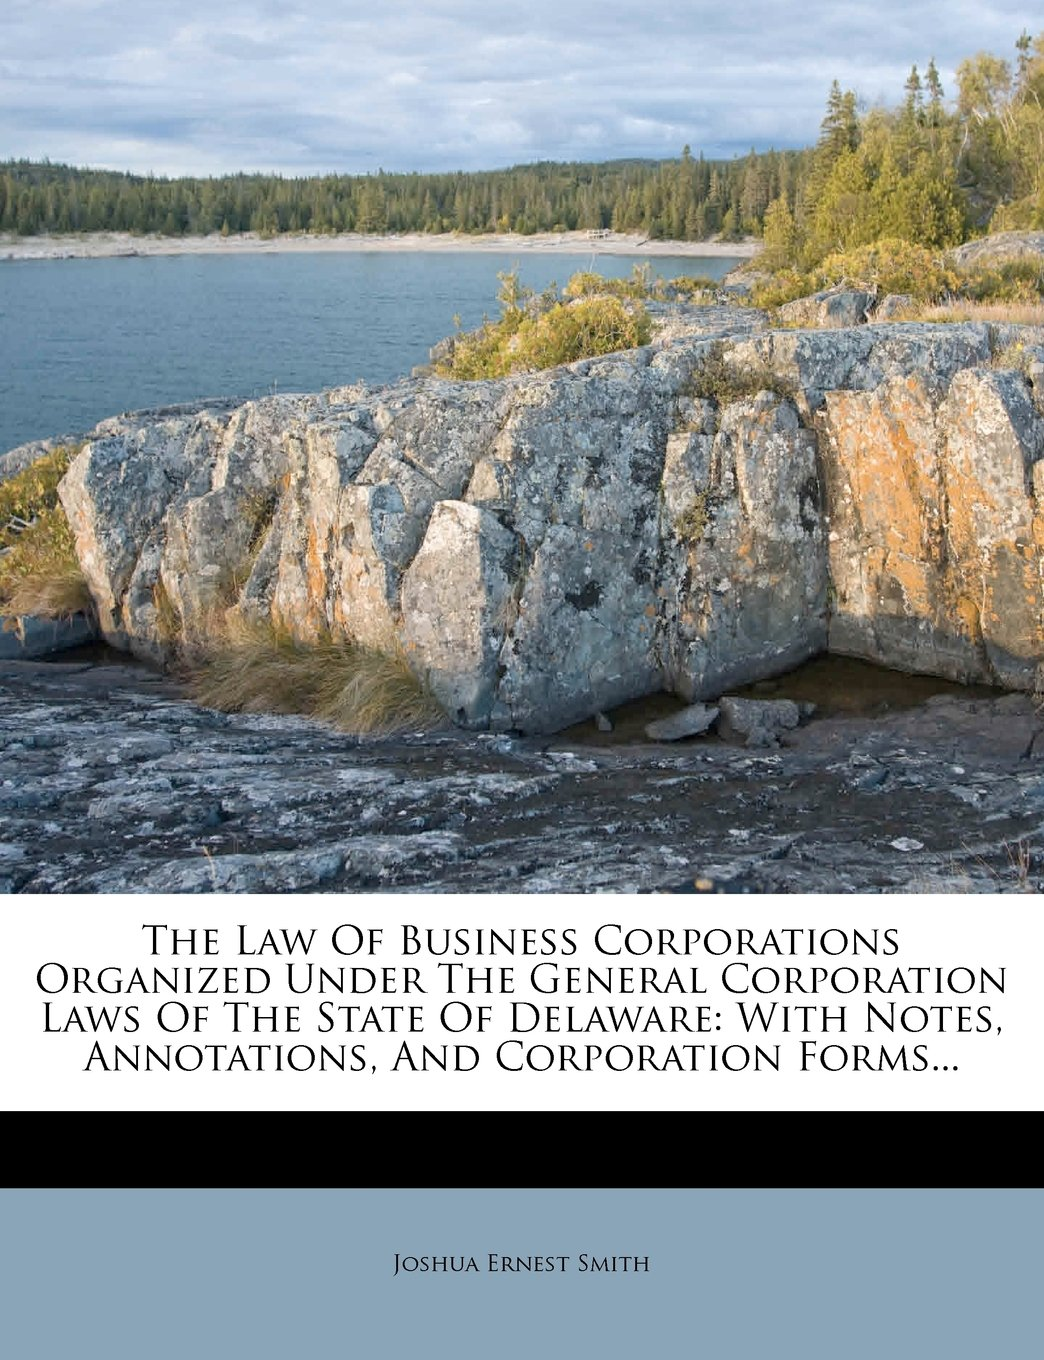 Download The Law Of Business Corporations Organized Under The General Corporation Laws Of The State Of Delaware: With Notes, Annotations, And Corporation Forms... ebook